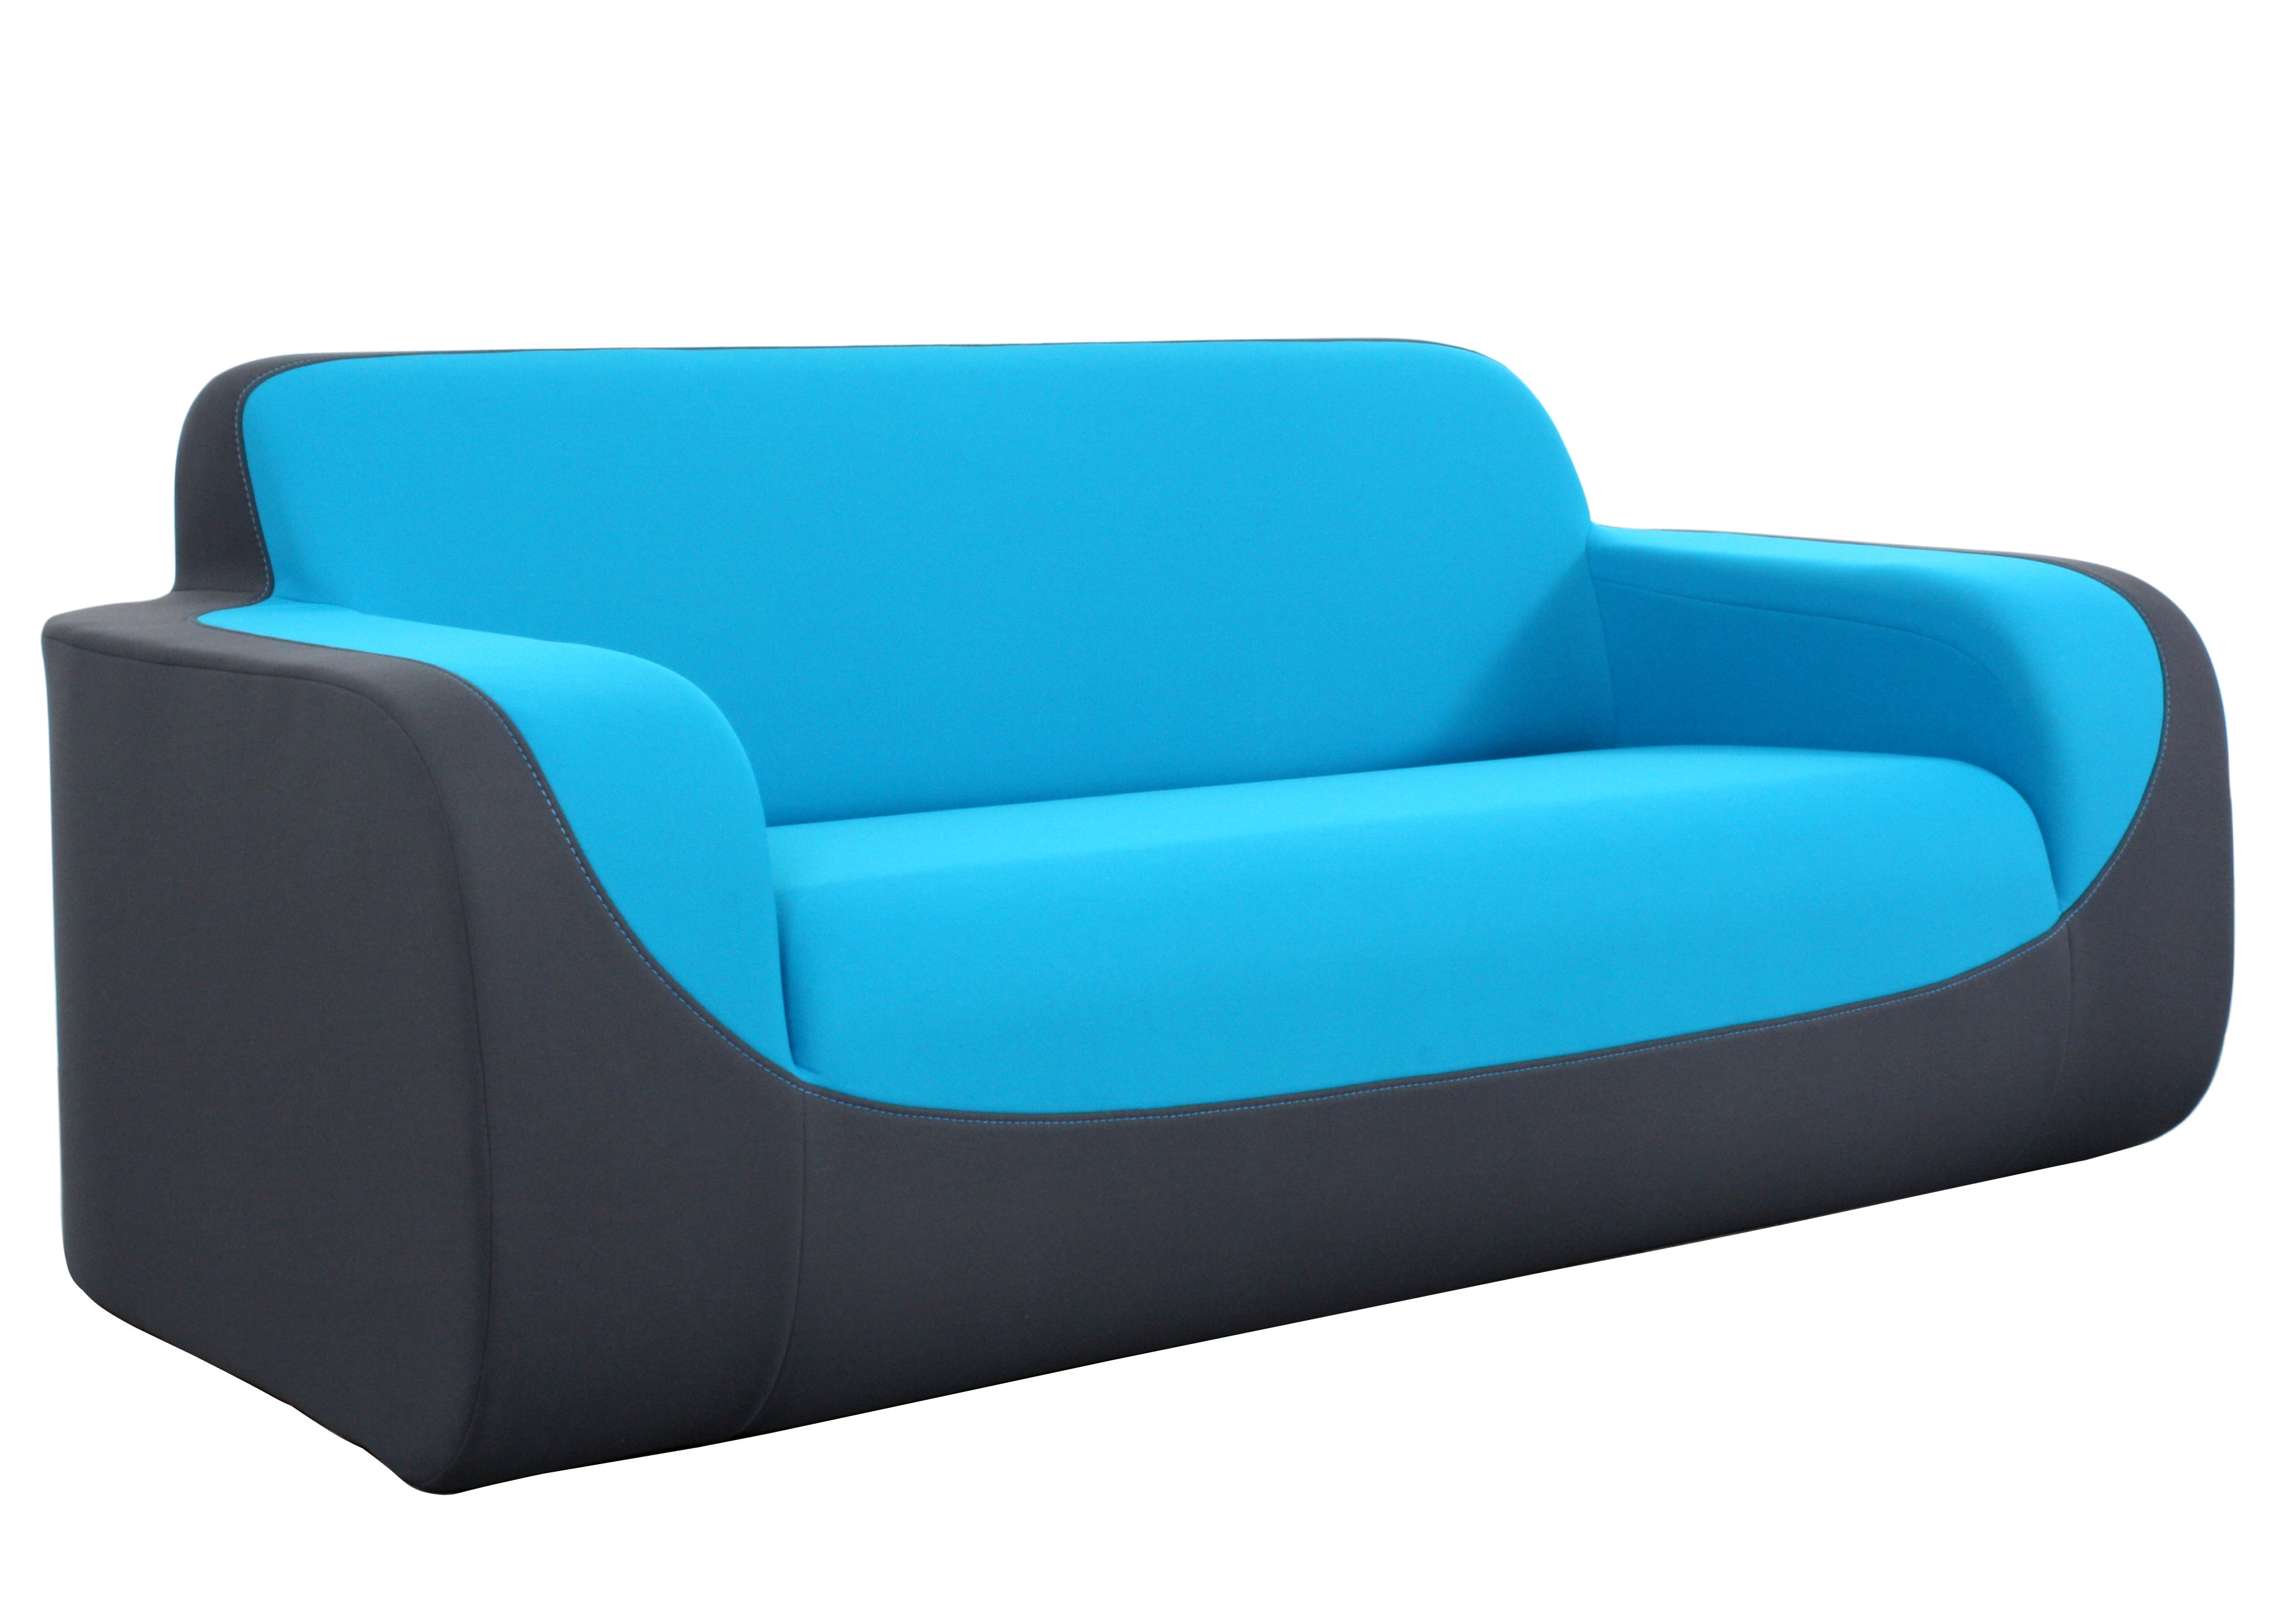 curling by ora ito sofa 2 sitzer l 180 cm grau blau deko naht t rkis by dunlopillo. Black Bedroom Furniture Sets. Home Design Ideas